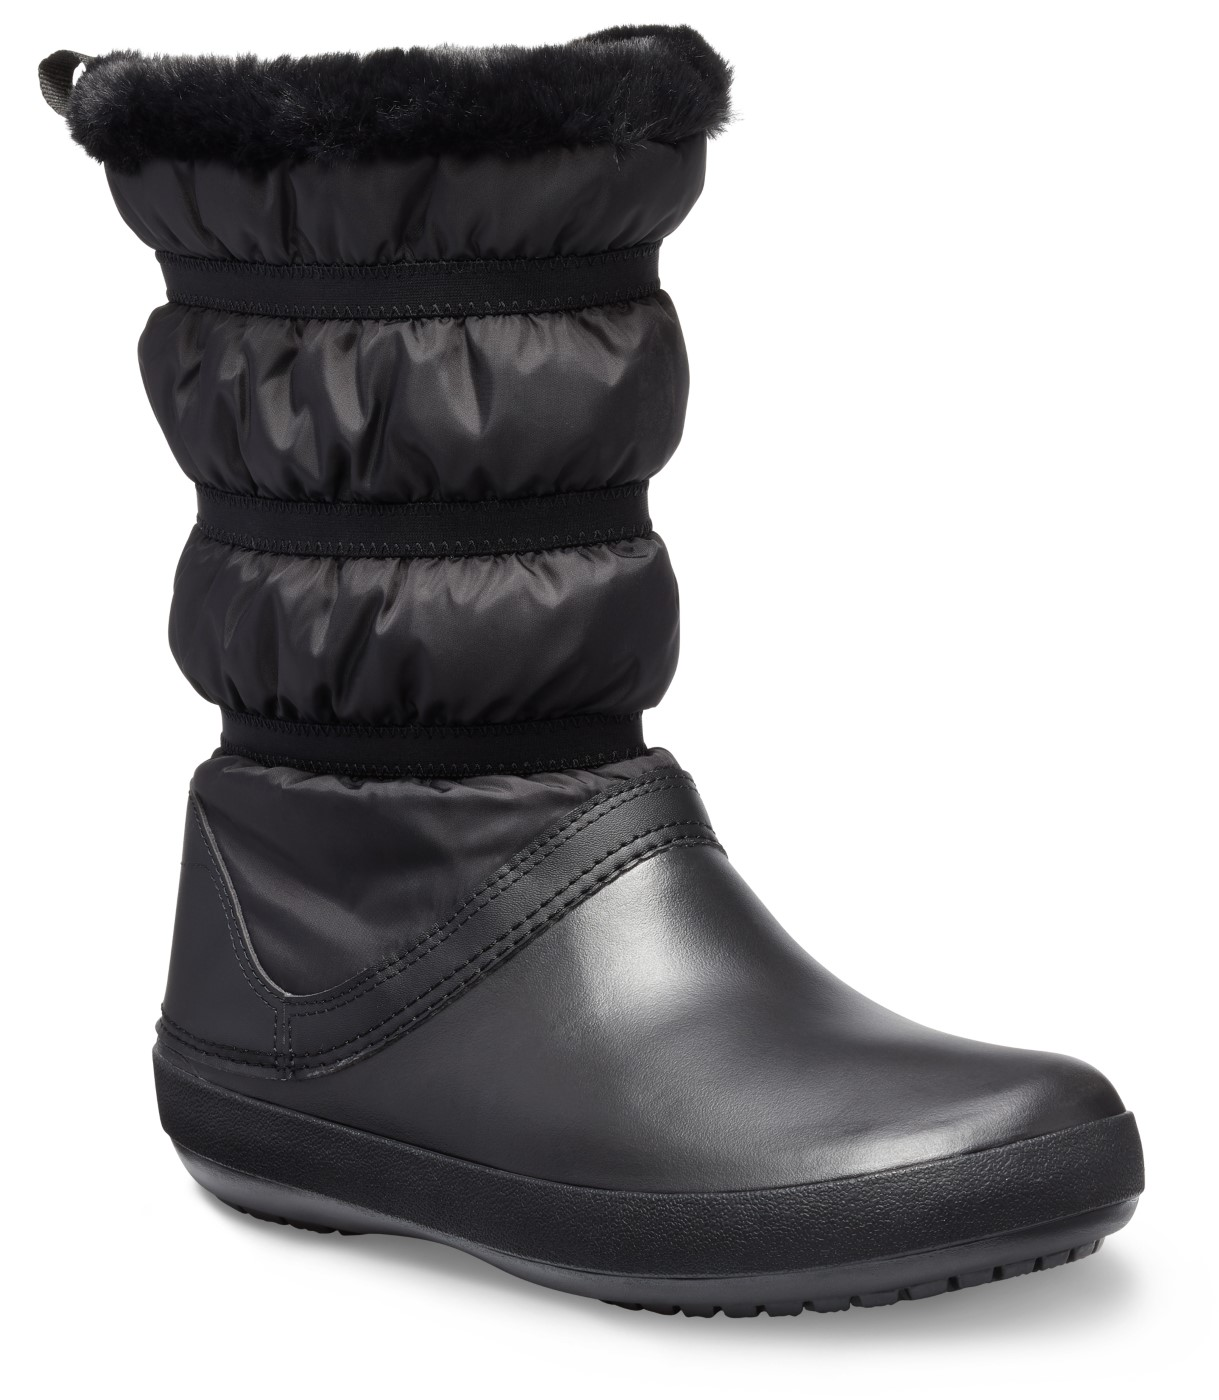 Crocs čierne snehule Crocband Winter Boot Black - 39/40